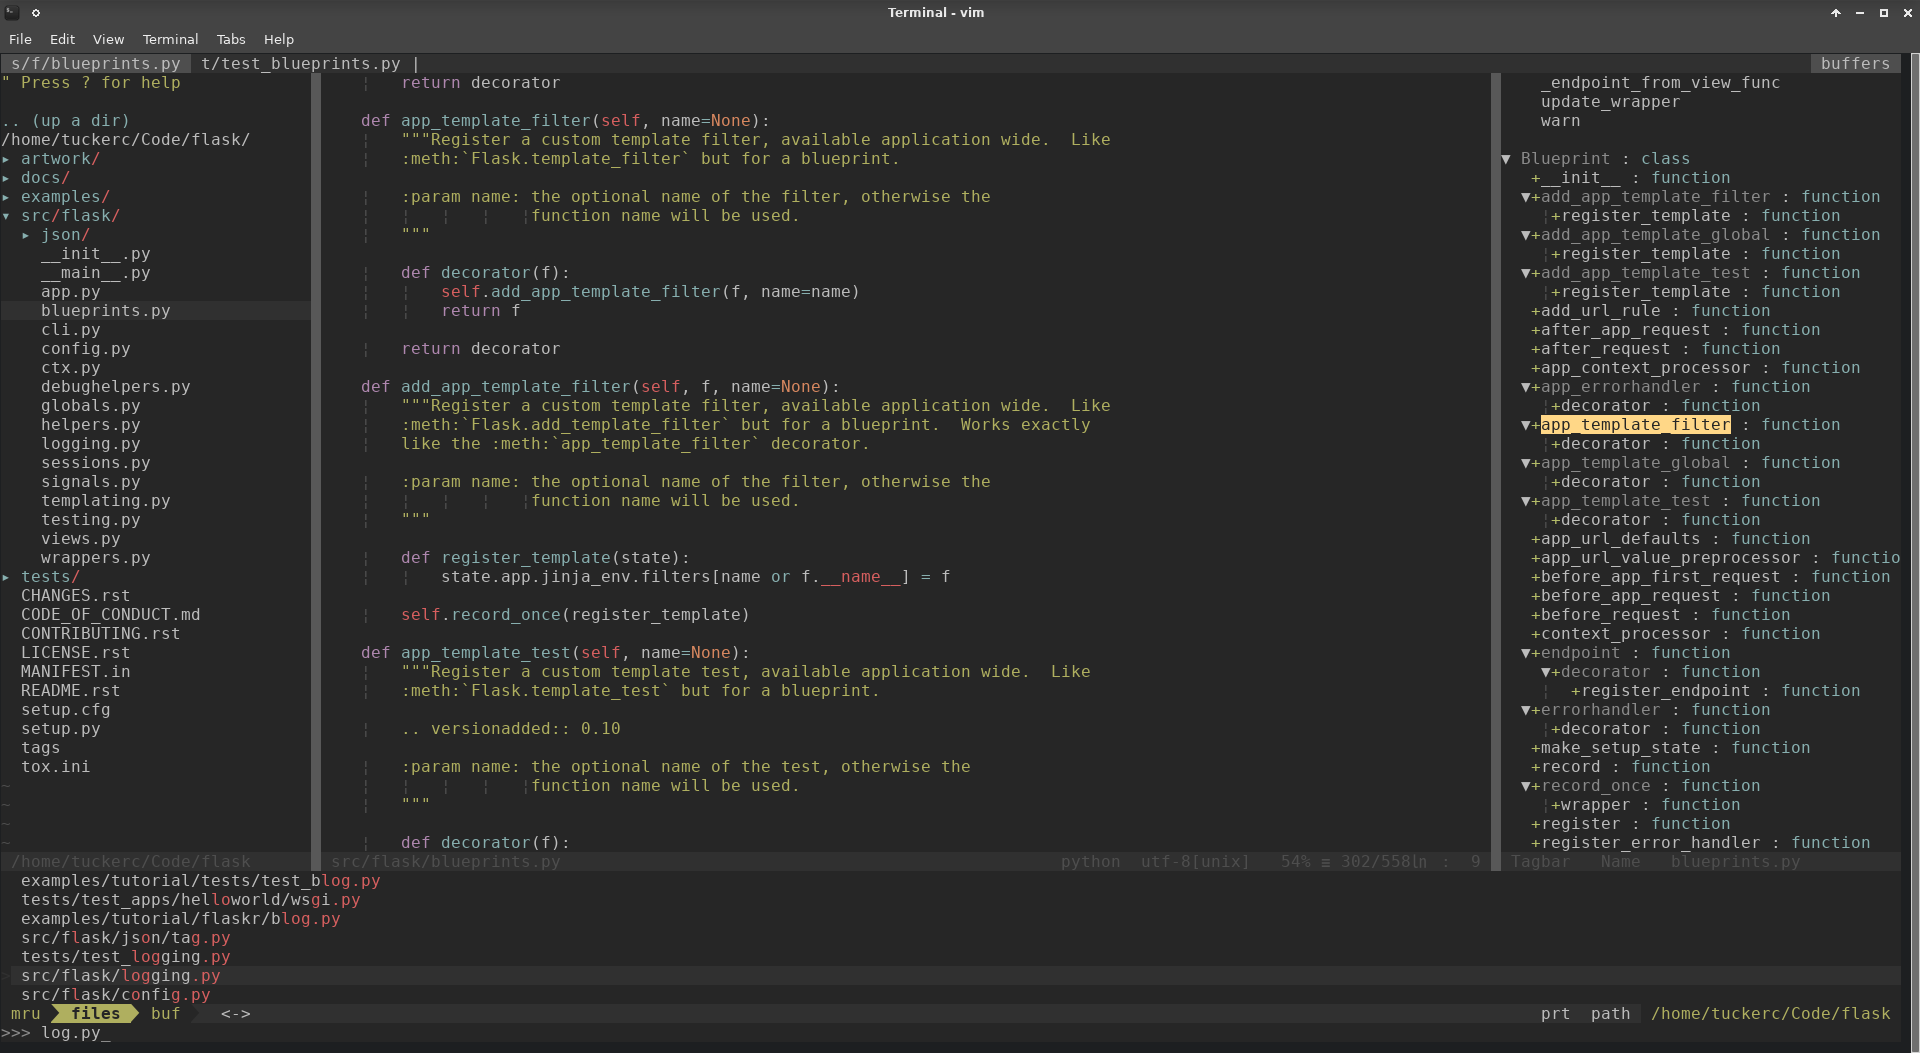 Screenshot of my vim setup